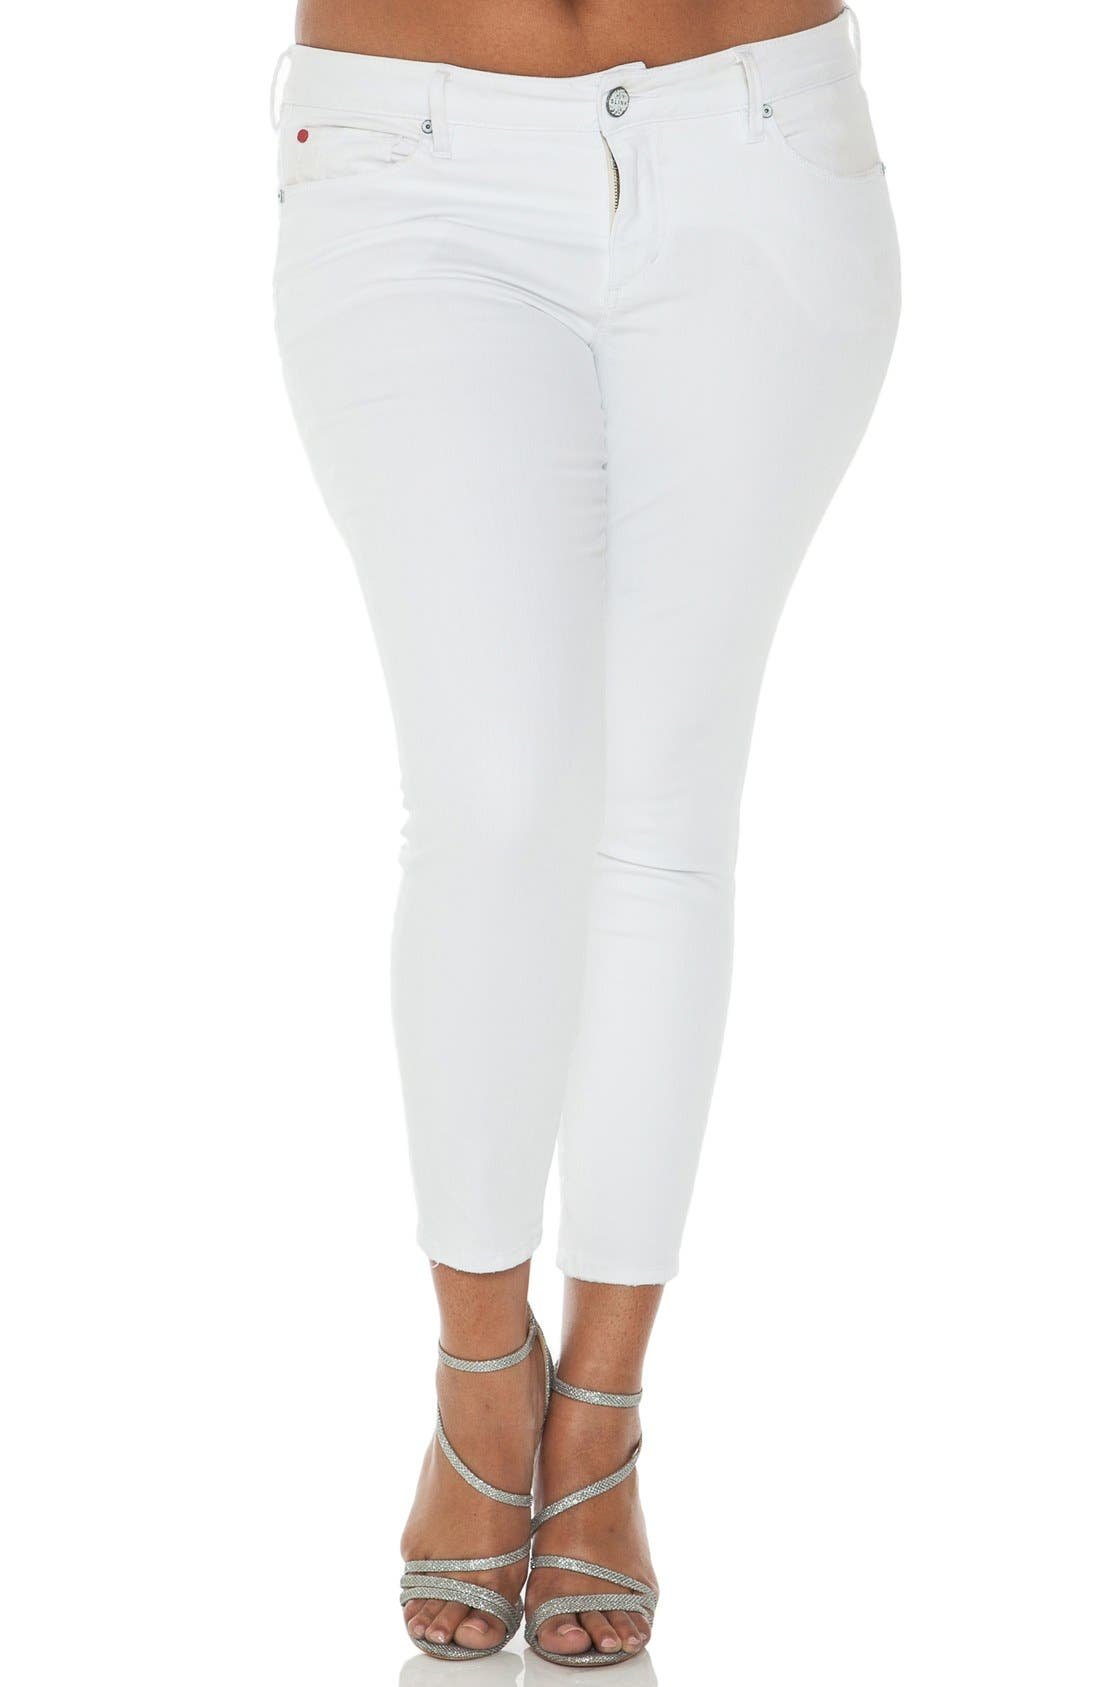 SLINK Jeans Stretch Ankle Skinny Jeans (Optical White) (Plus Size)